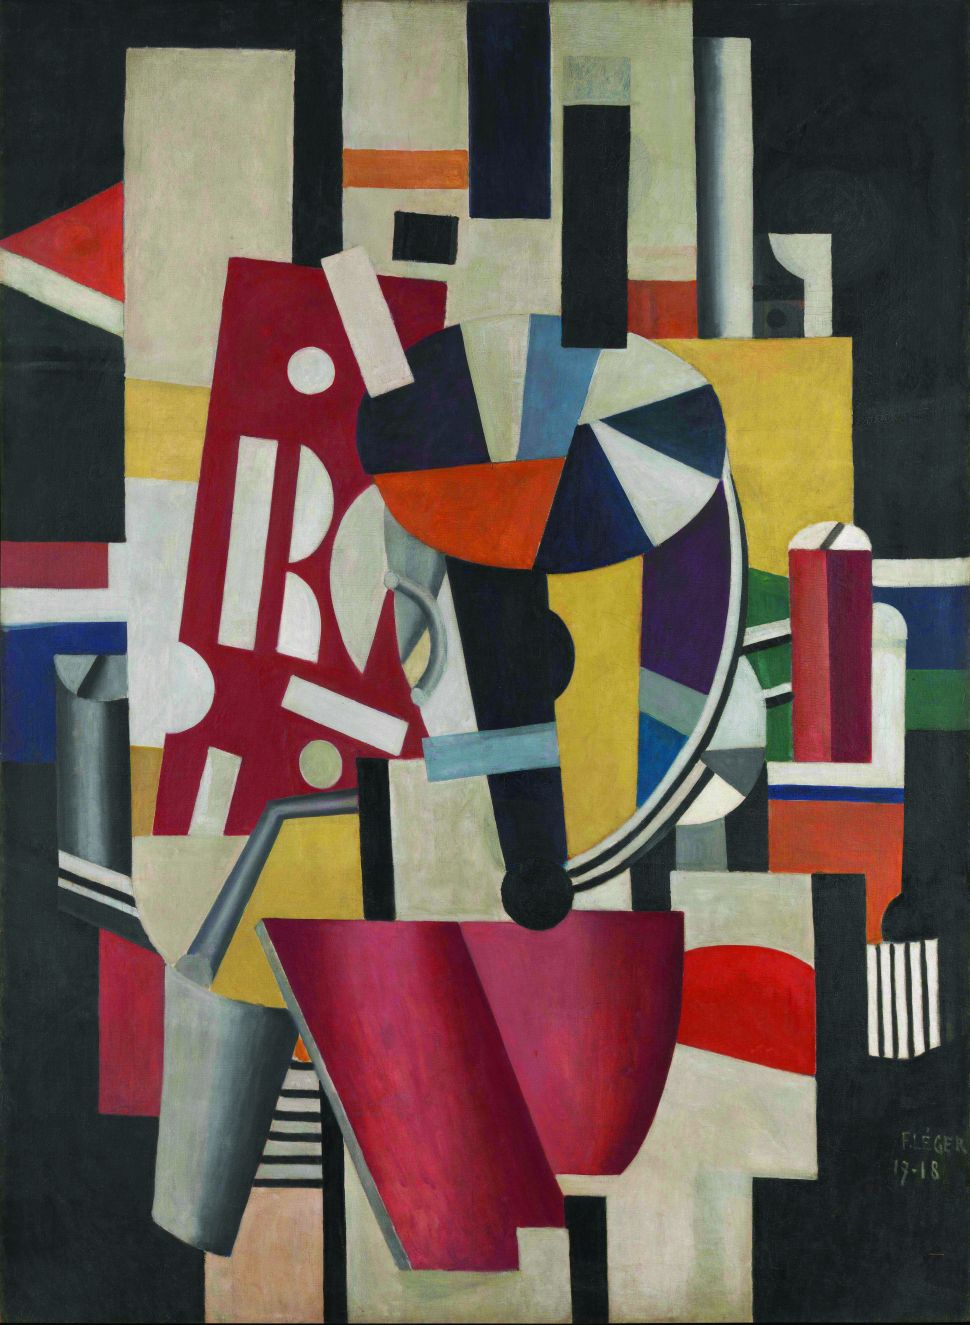 A New Geometry: David Ebony on a Cosmetics King's Cubist Gems at The Met